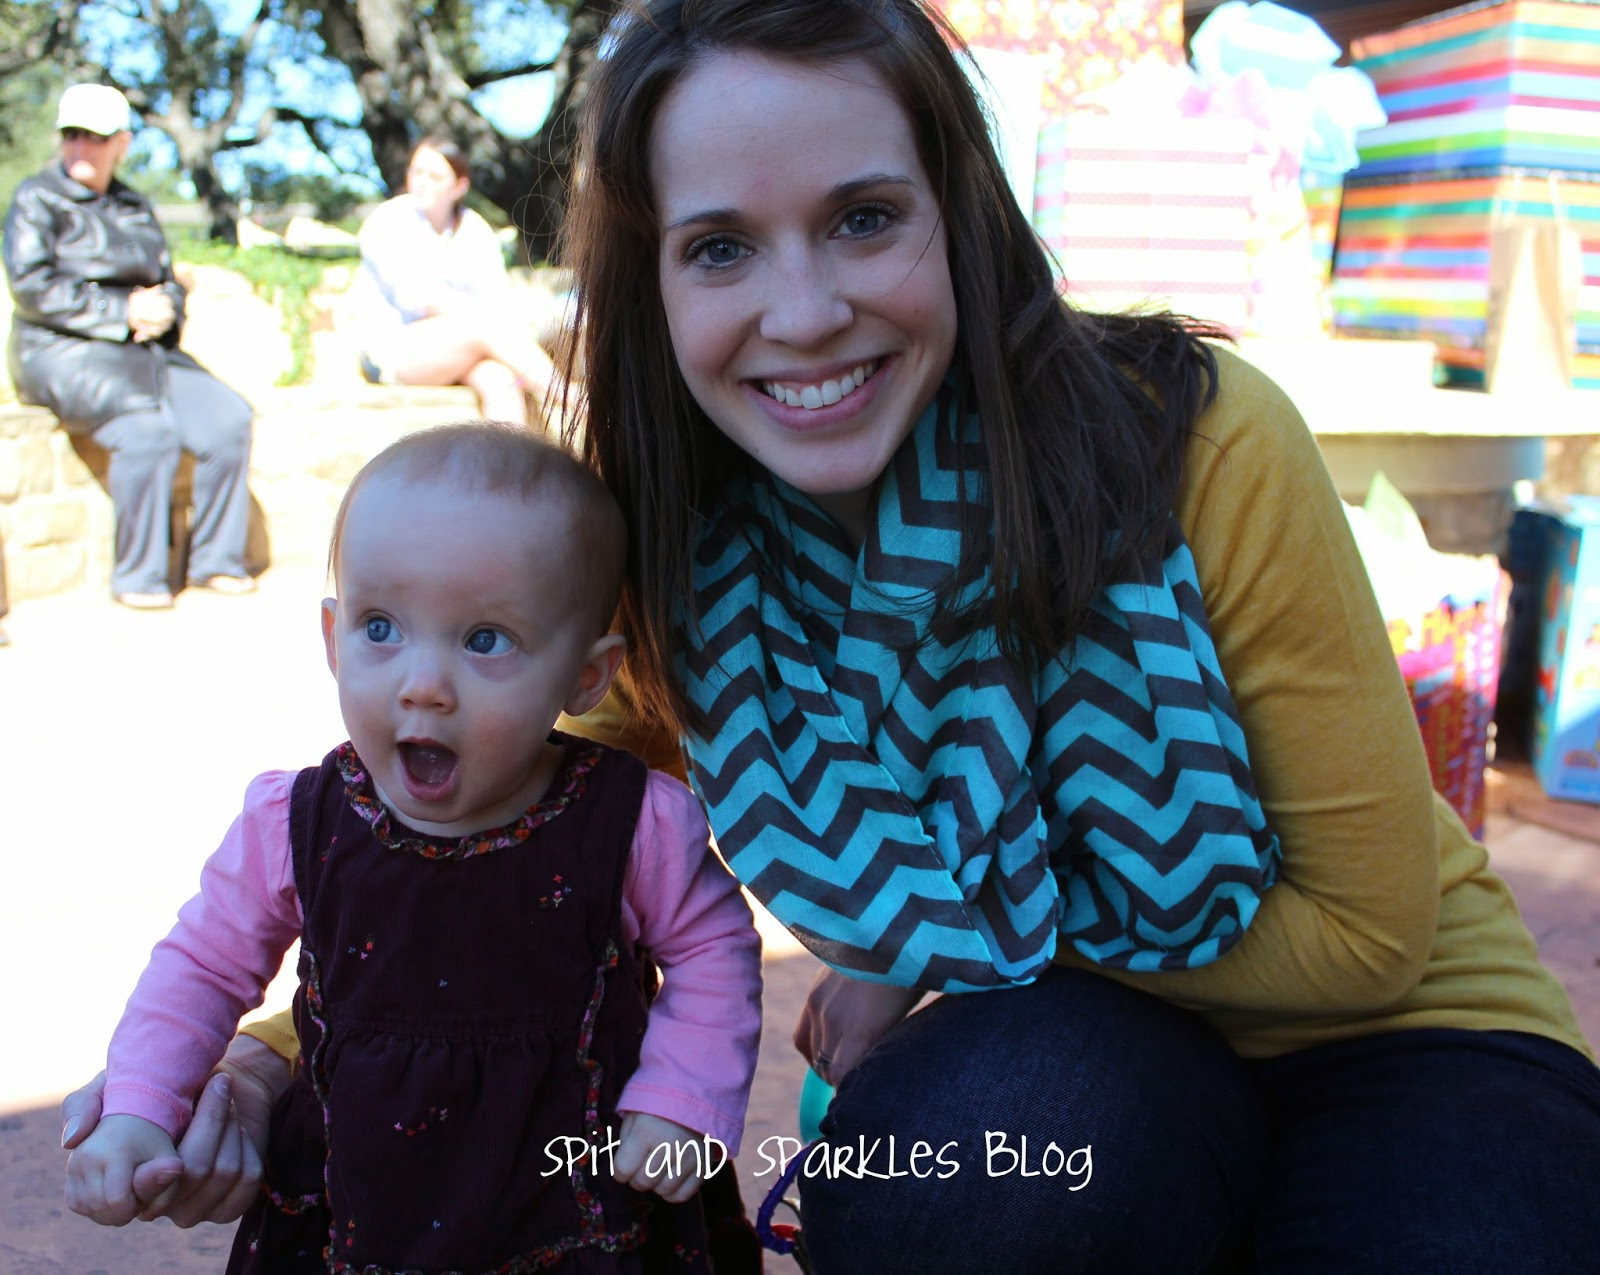 """Inspiring message for moms, plus verse of encouragement via Spit and Sparkles Blog: """"Though outwardly we are wasting away, yet inwardly we are being renewed day by day"""" 2Corinthians 4:16-18 #faith #encouragement #parenting"""